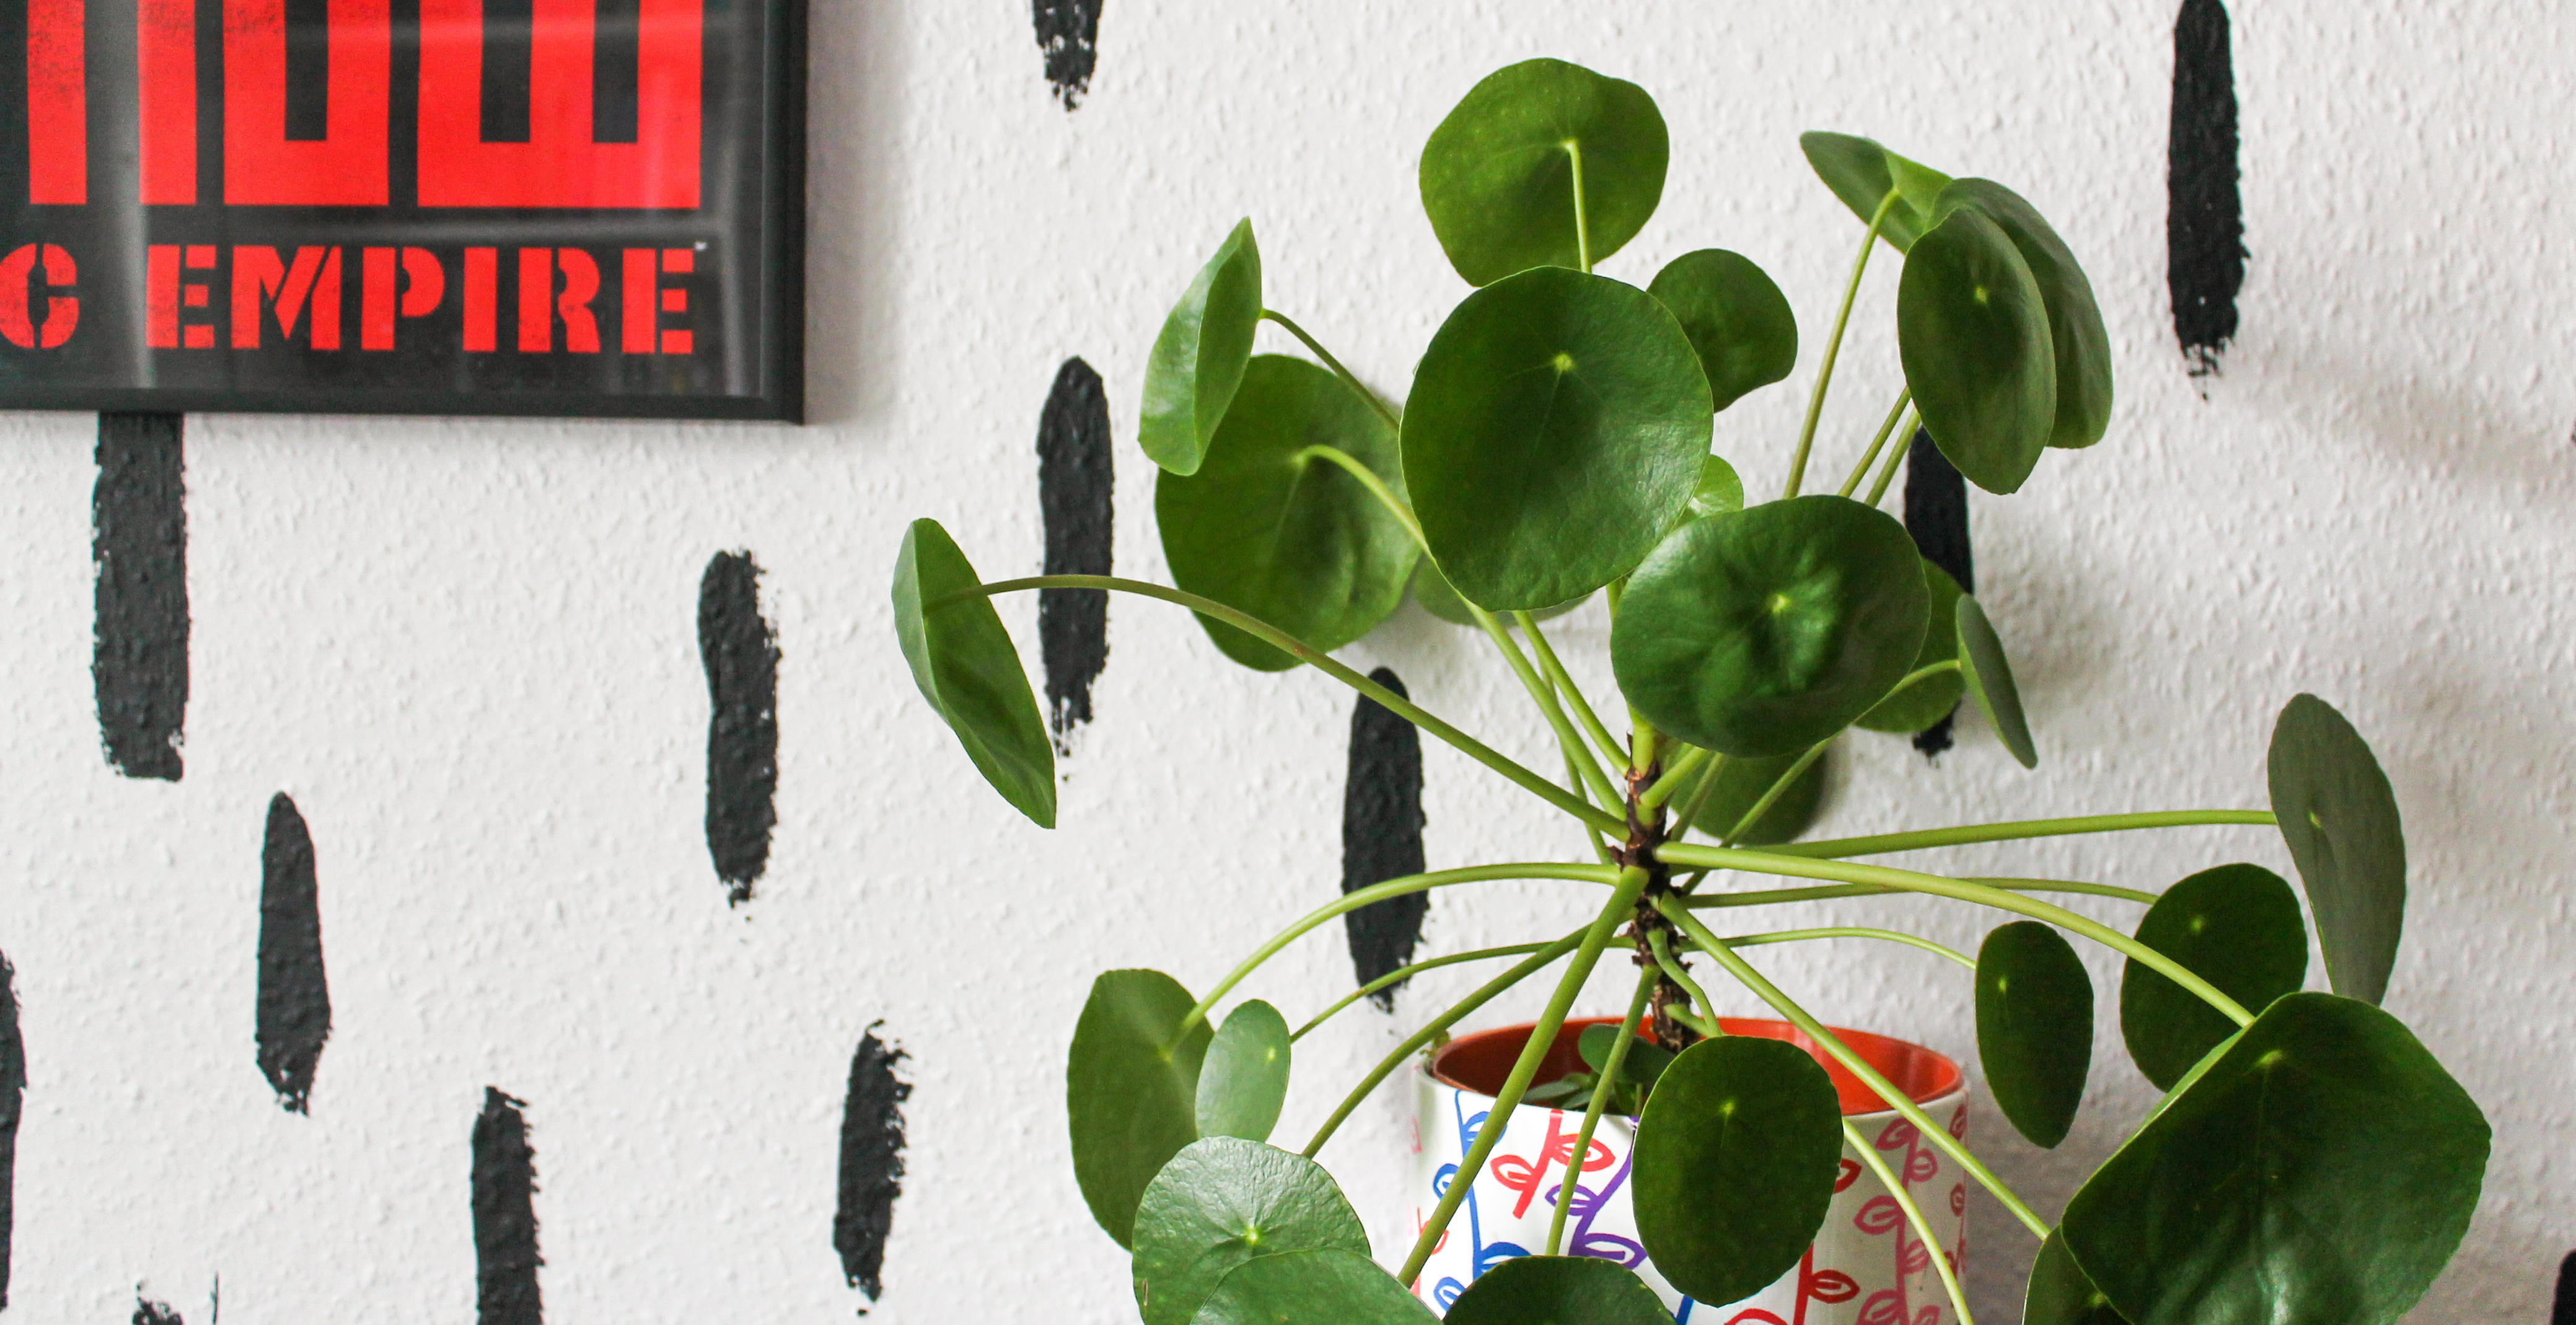 Pilea in a white pot decorated with leaves. Pilea is a green plant with circular leaves. Backdrop is a black and white mural, with a red and black picture to the left.